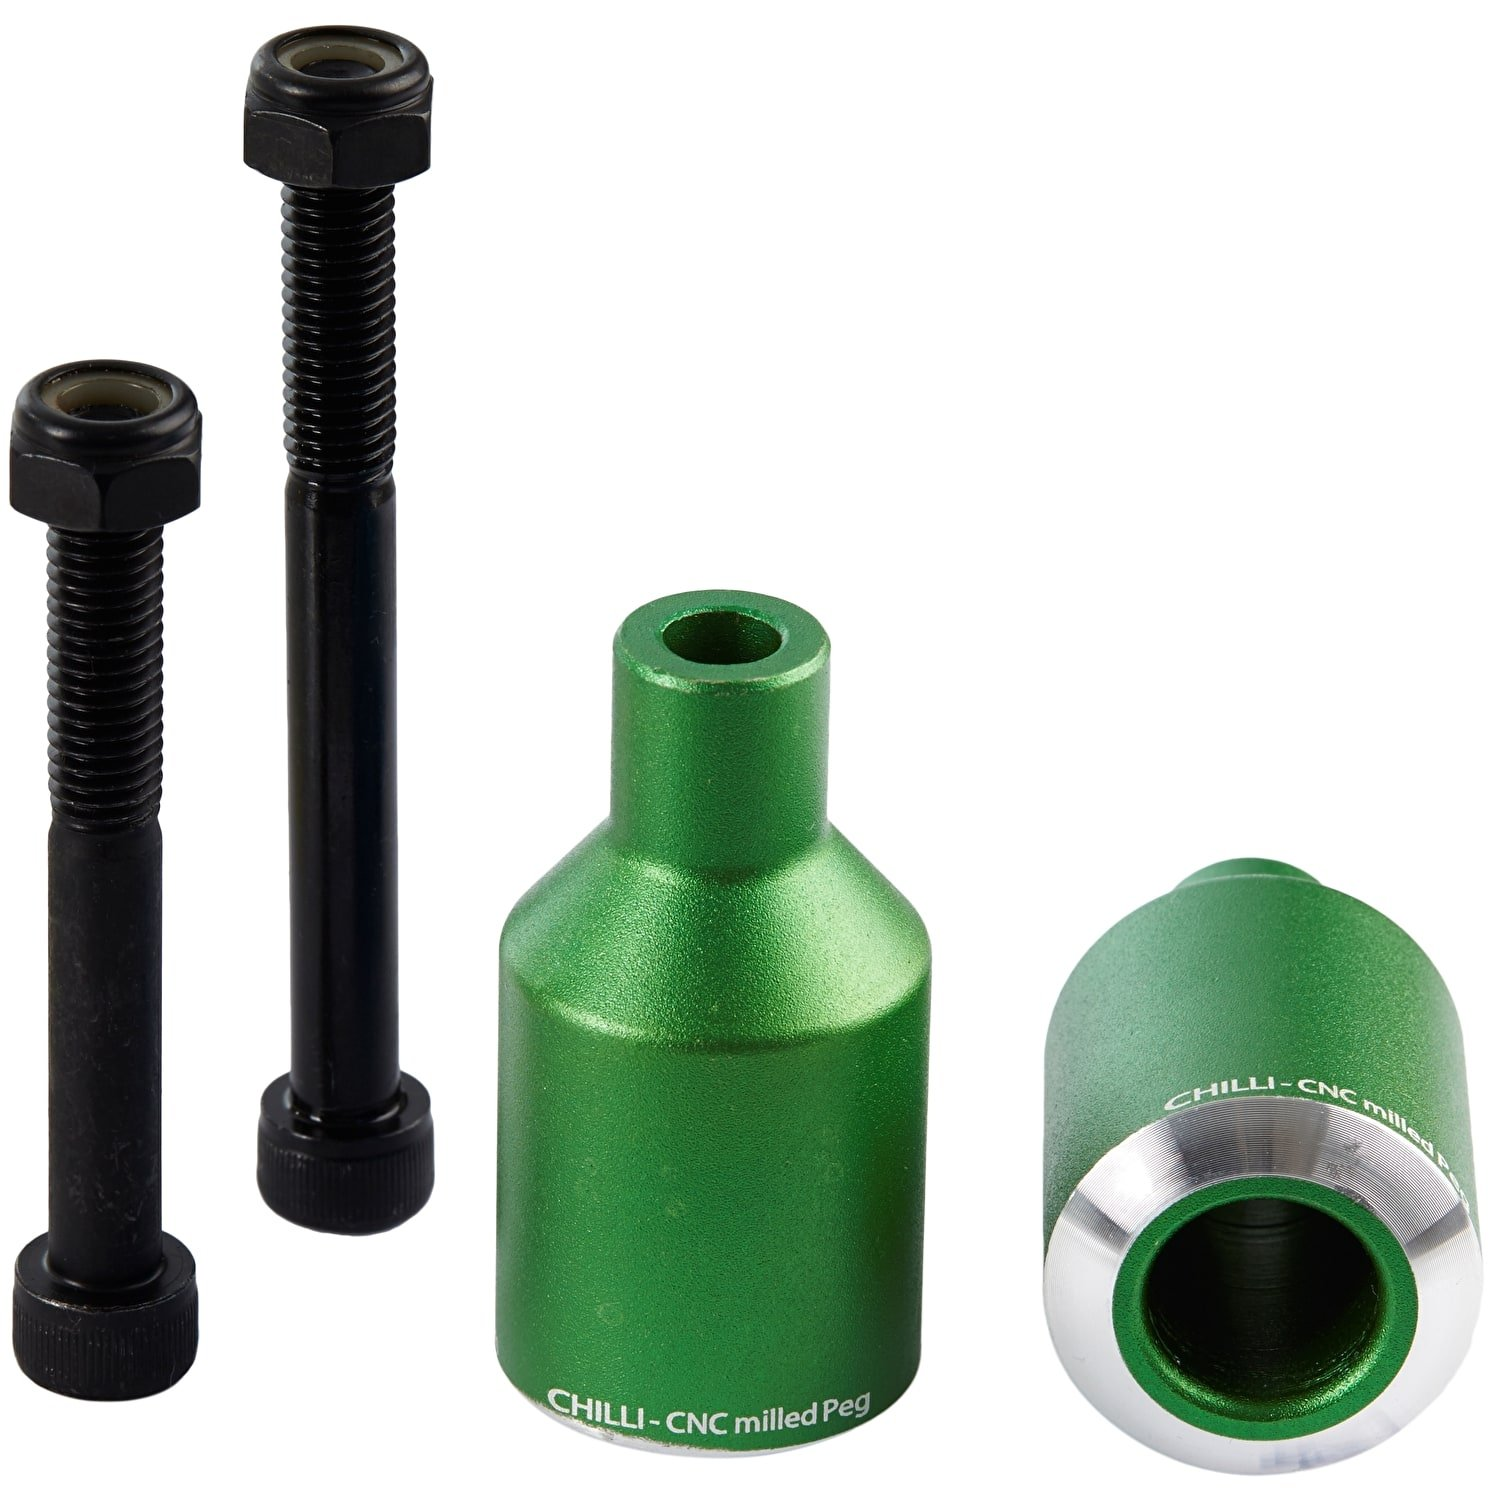 Chilli Pro Scooter Rocket Pegs (Green) by Chilli Pro Scooter